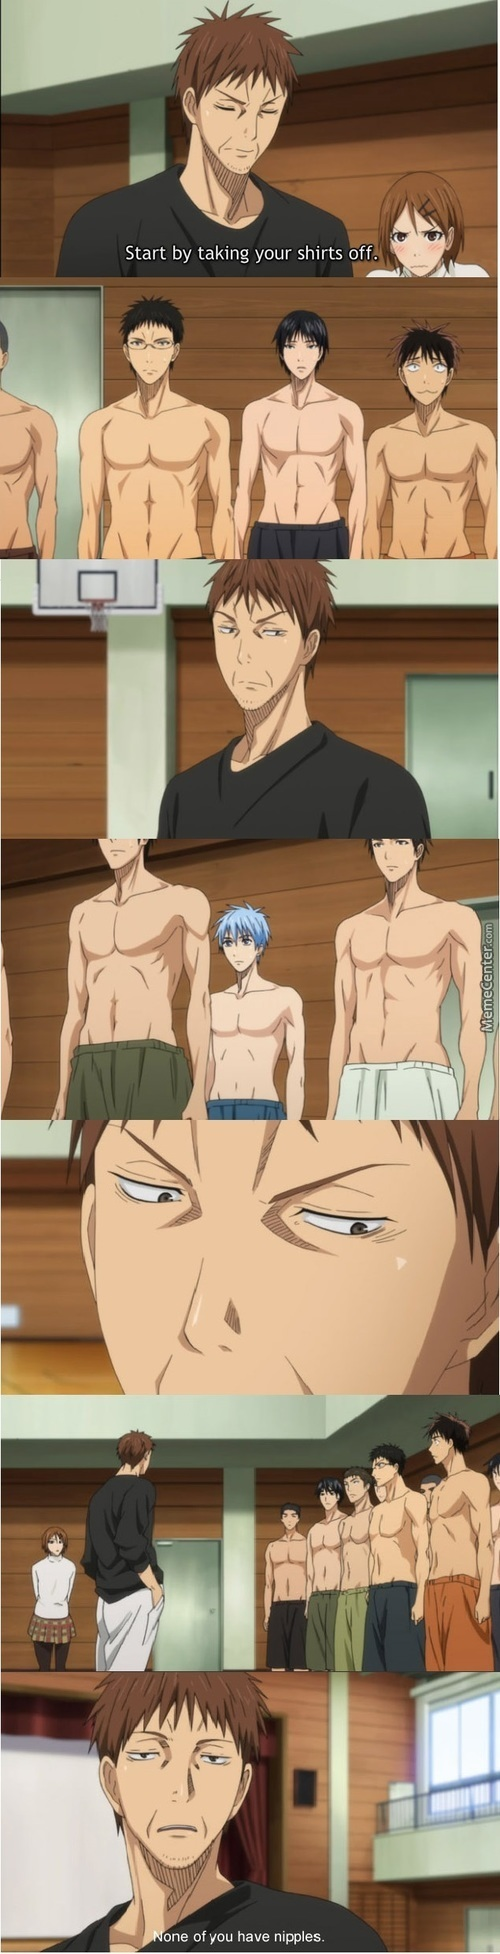 Do You Think The Girl In The First Frame Cares About That? I Don't Think So. (Anime:  Kuroko No Basket)